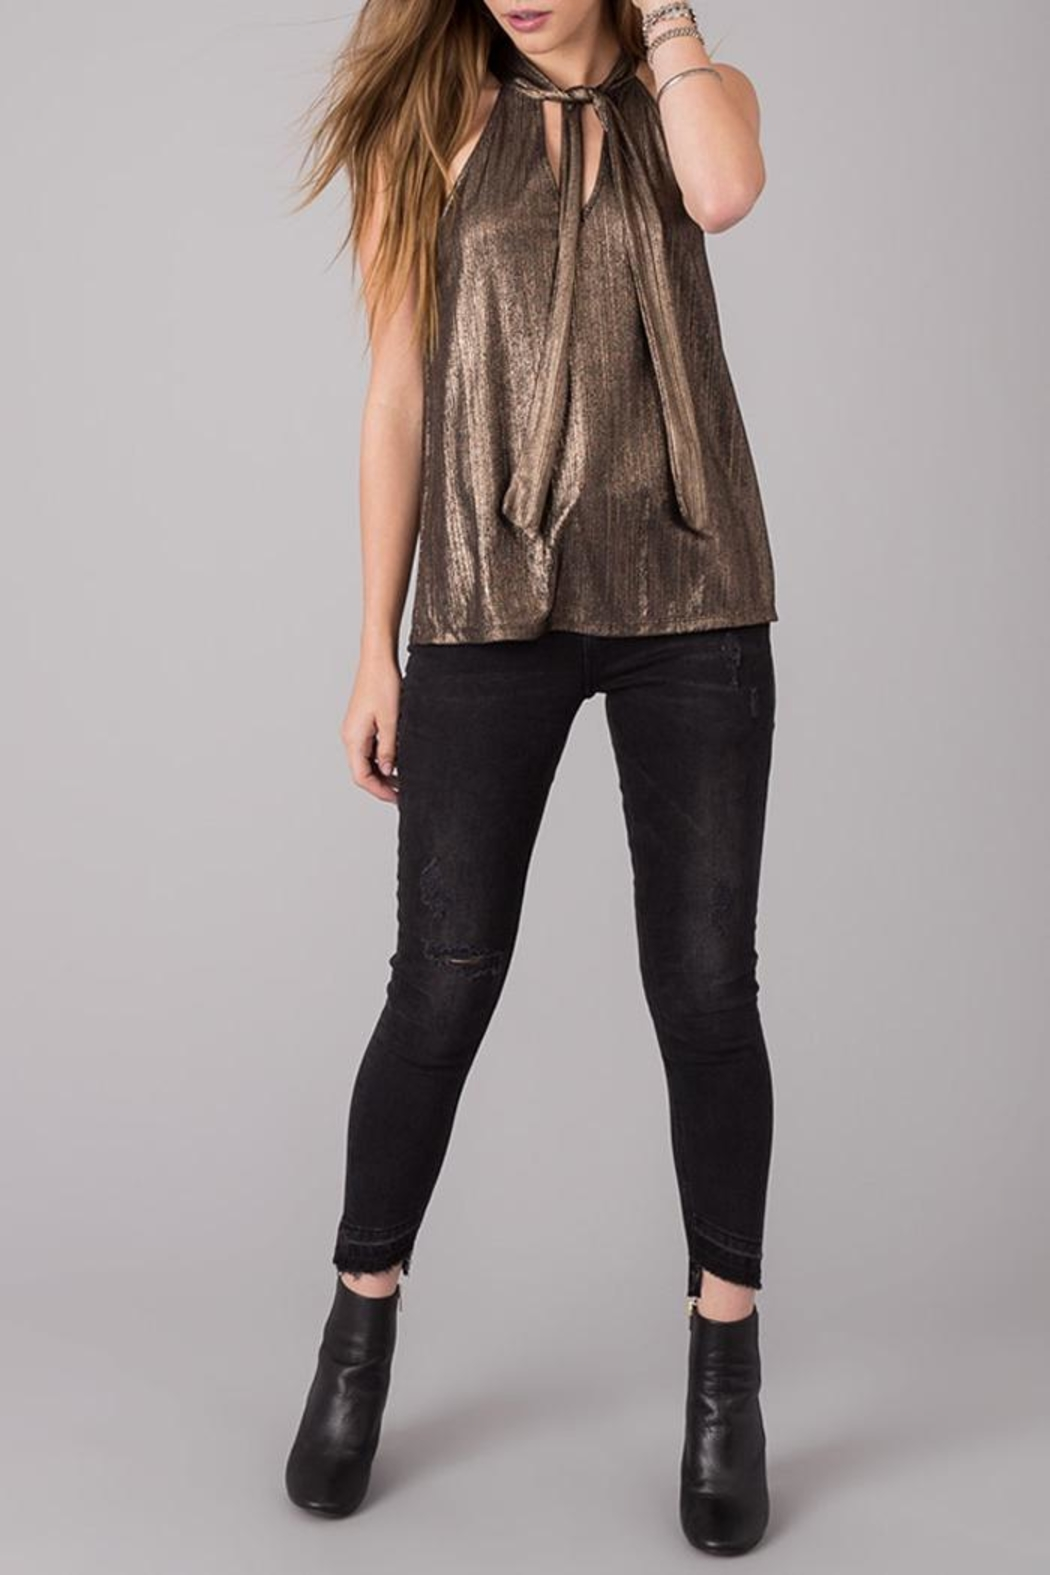 Others Follow  Gold Foil Top - Back Cropped Image